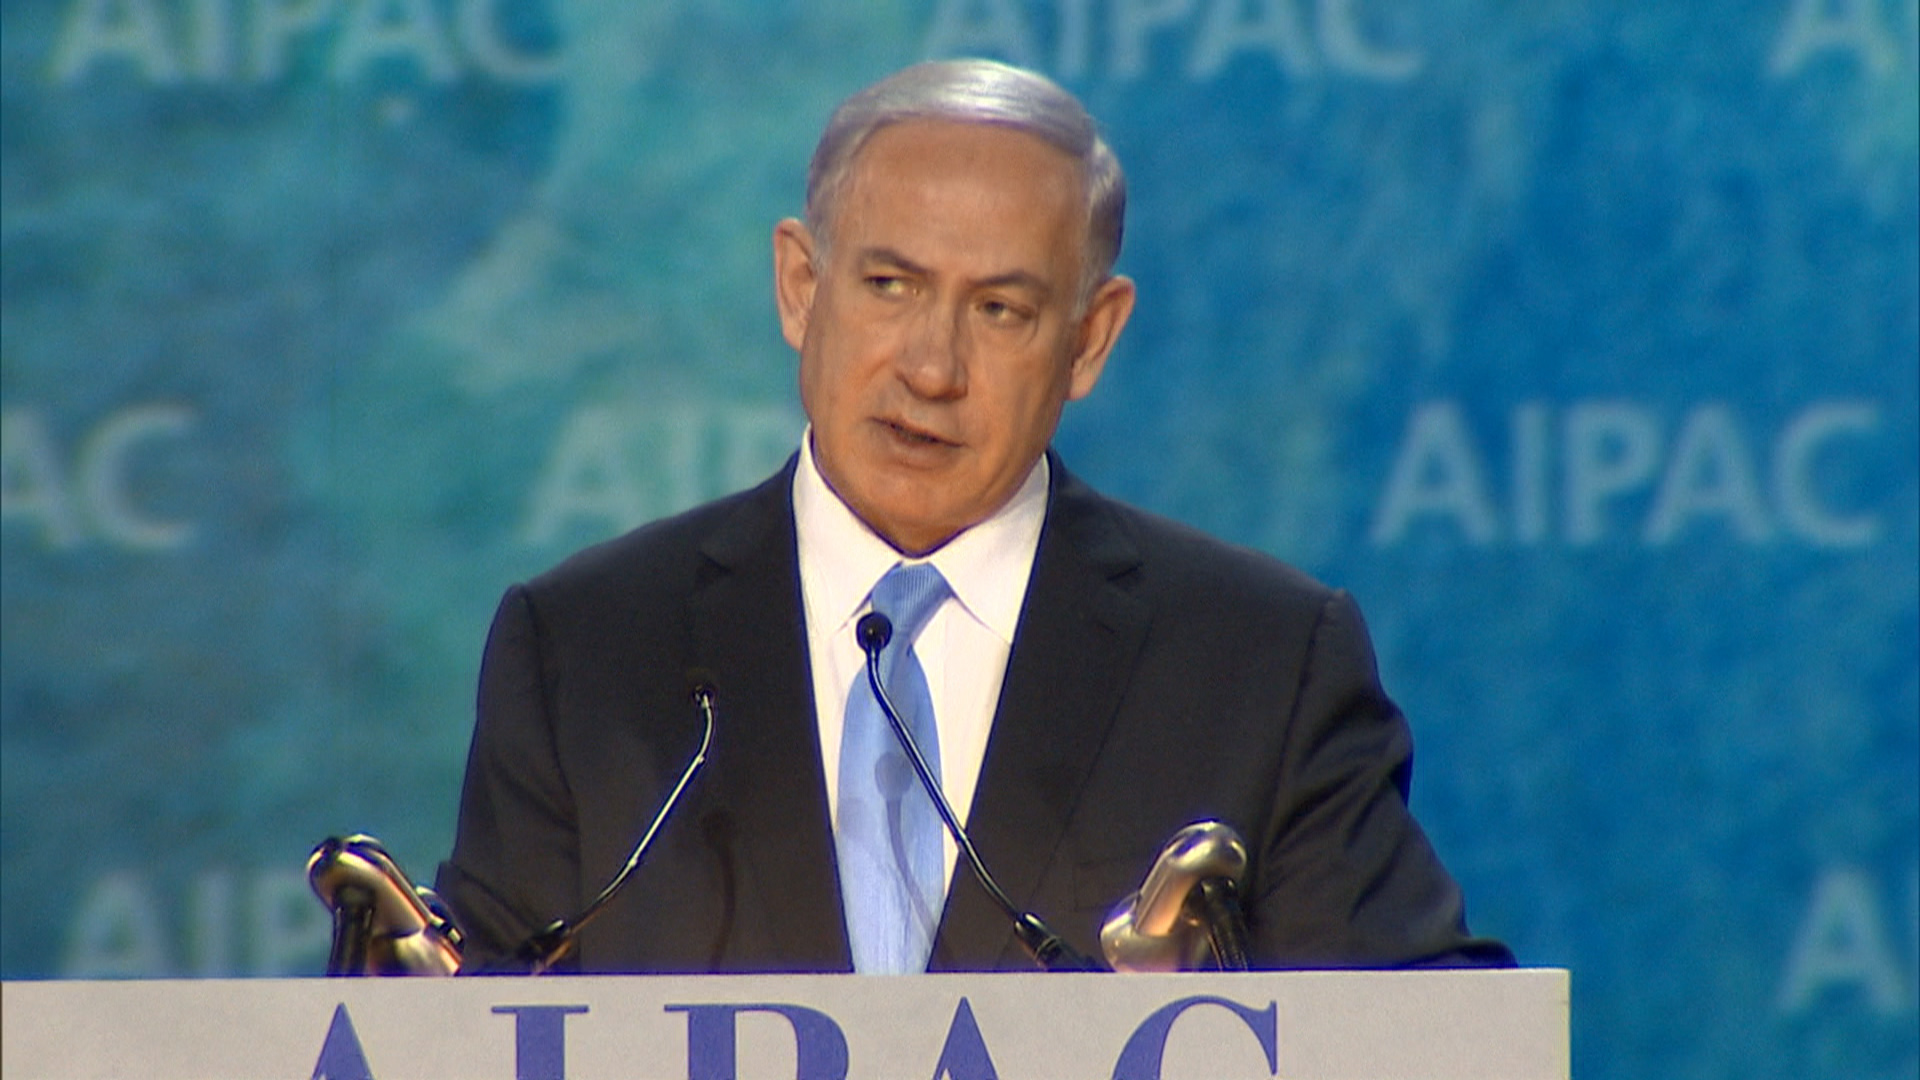 Netanyahu: America and Israel are like family